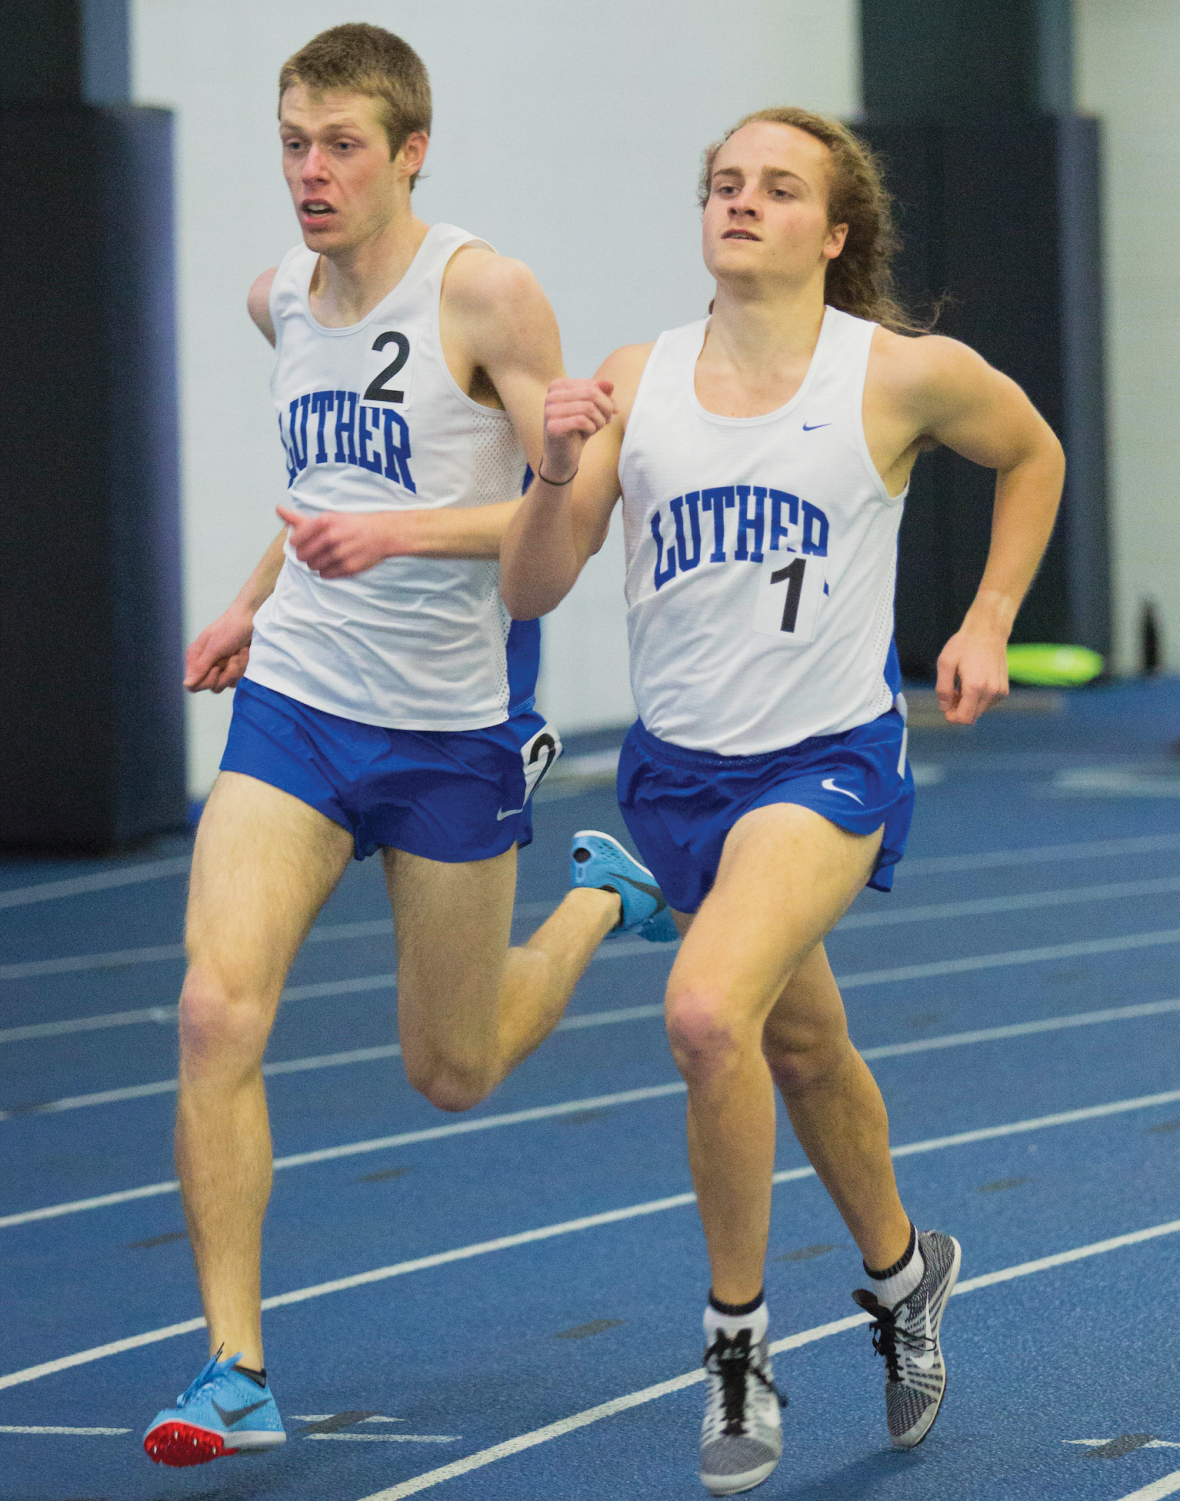 Kyle Gilberg ('19) and Collin Kern ('20) sprint to the finish line during a 1000-meter race earlier in the year.